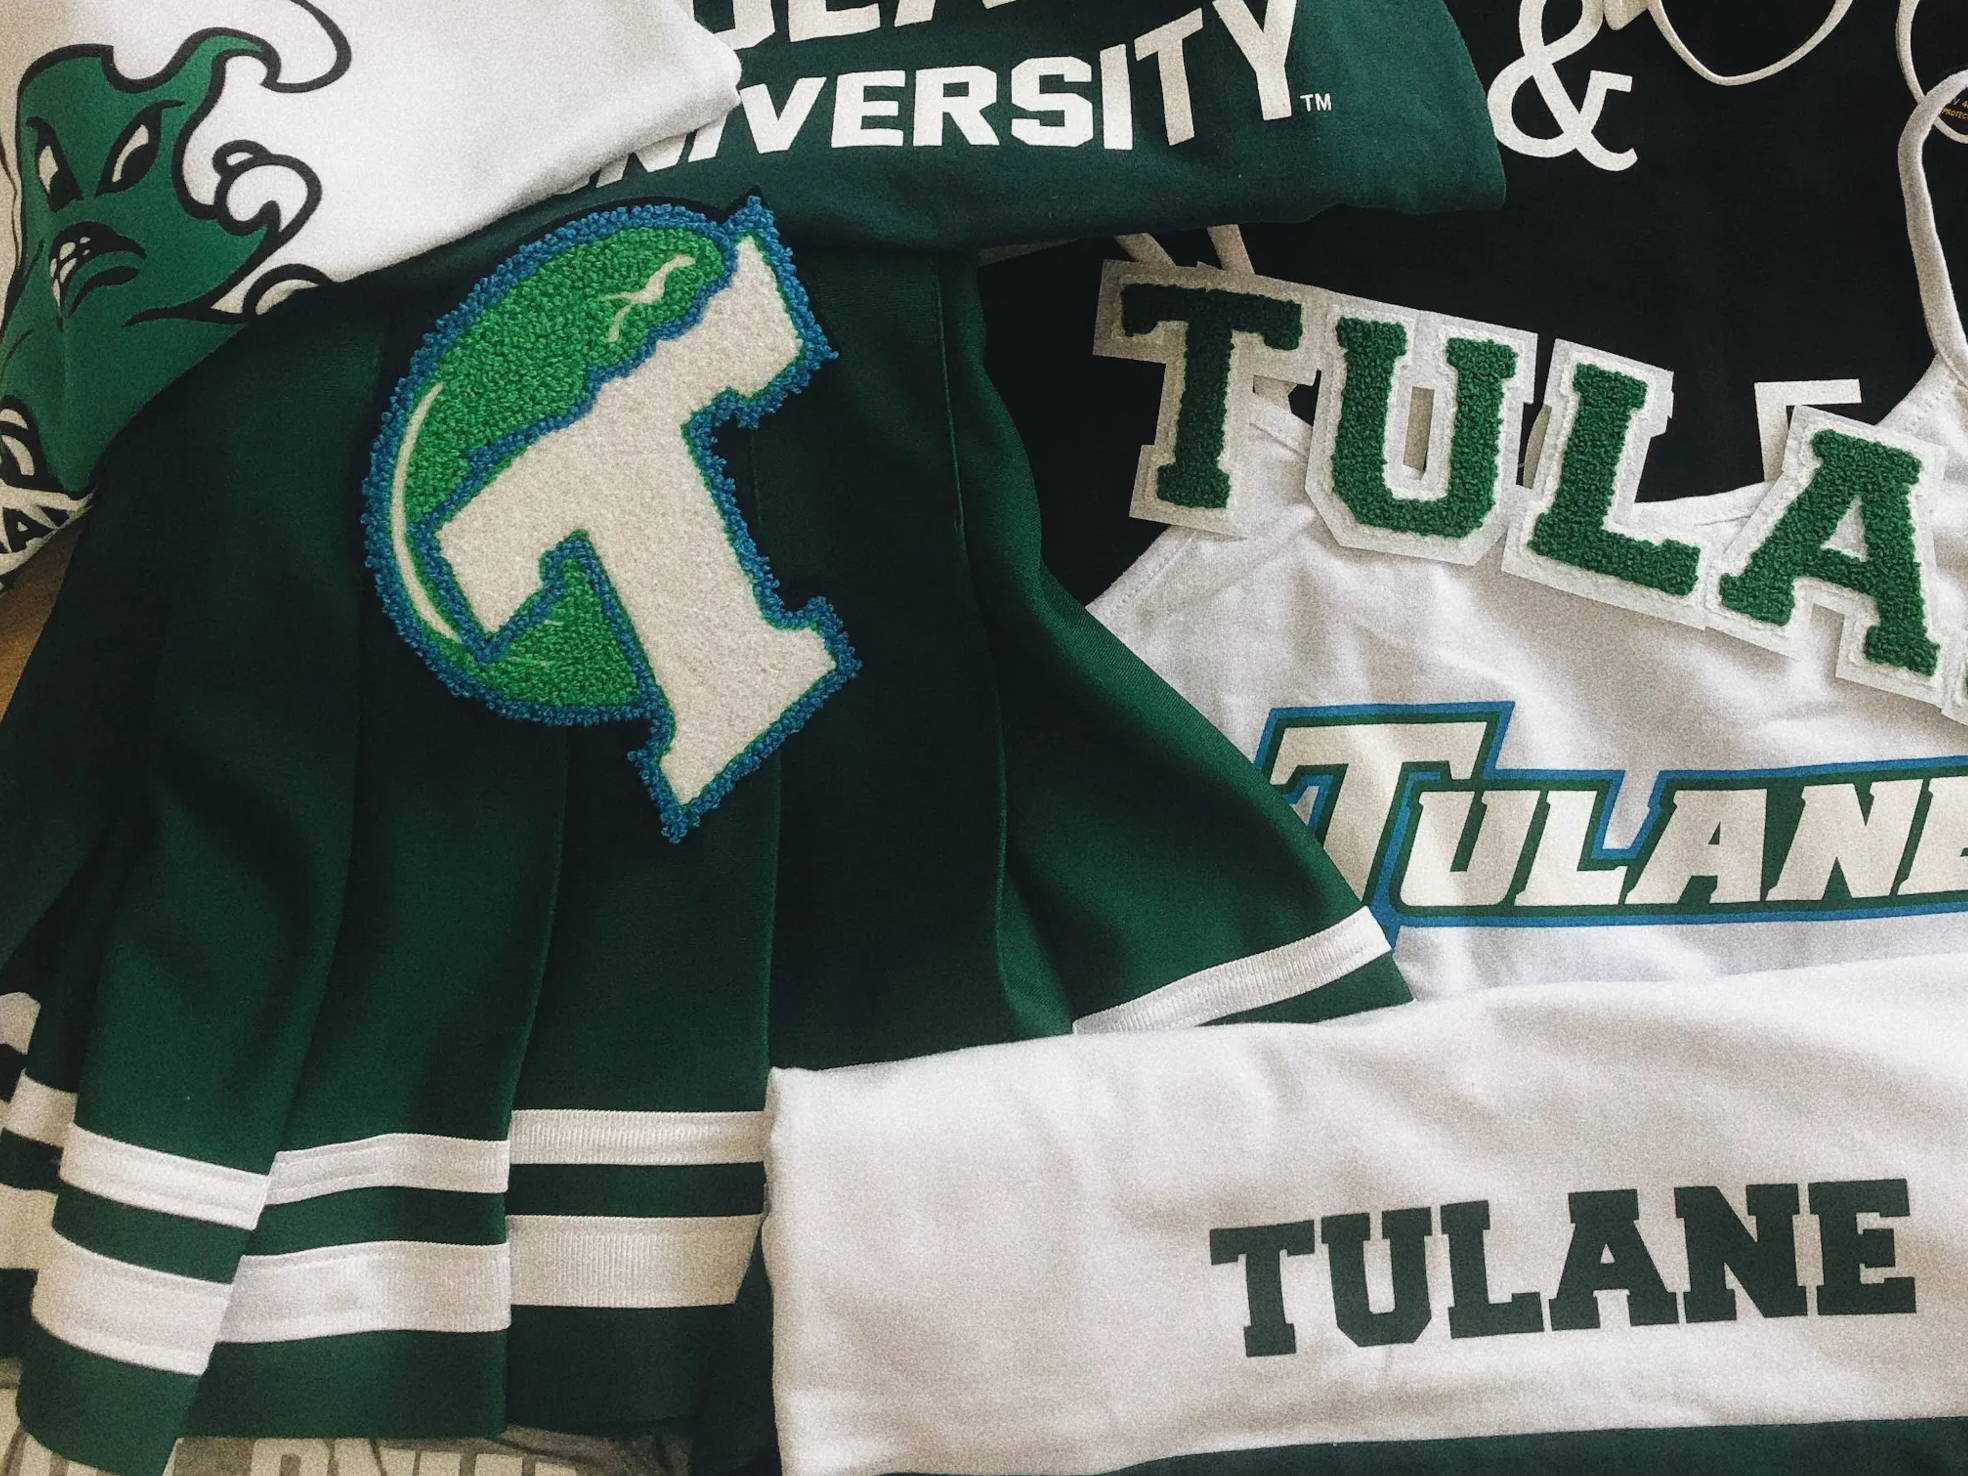 Tulane University college apparel for women. Cute and trendy!